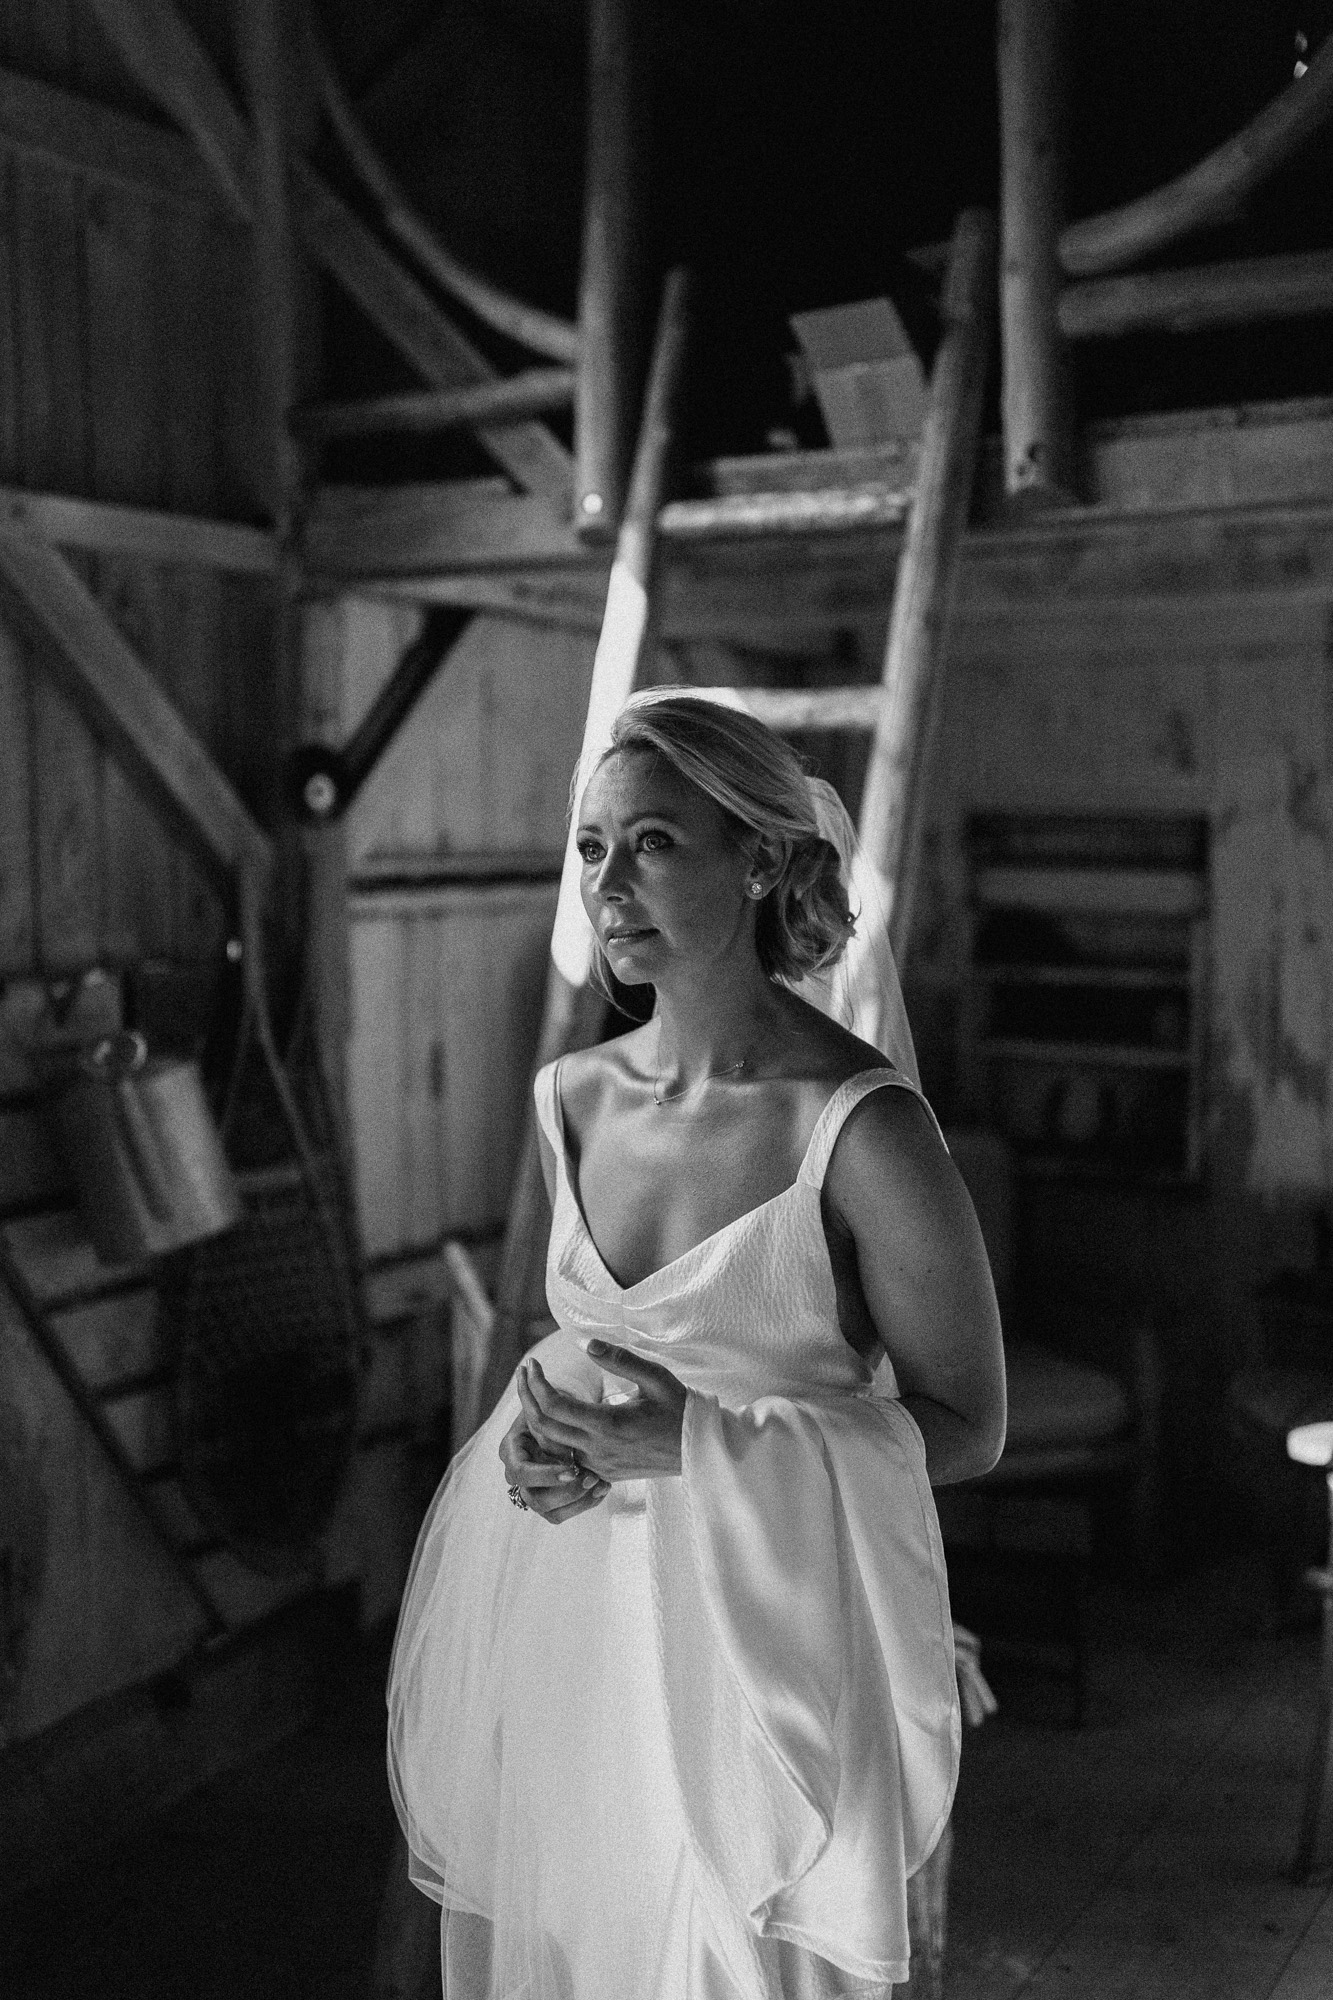 upstate_new_york_wedding_alec_vanderboom-0055.jpg